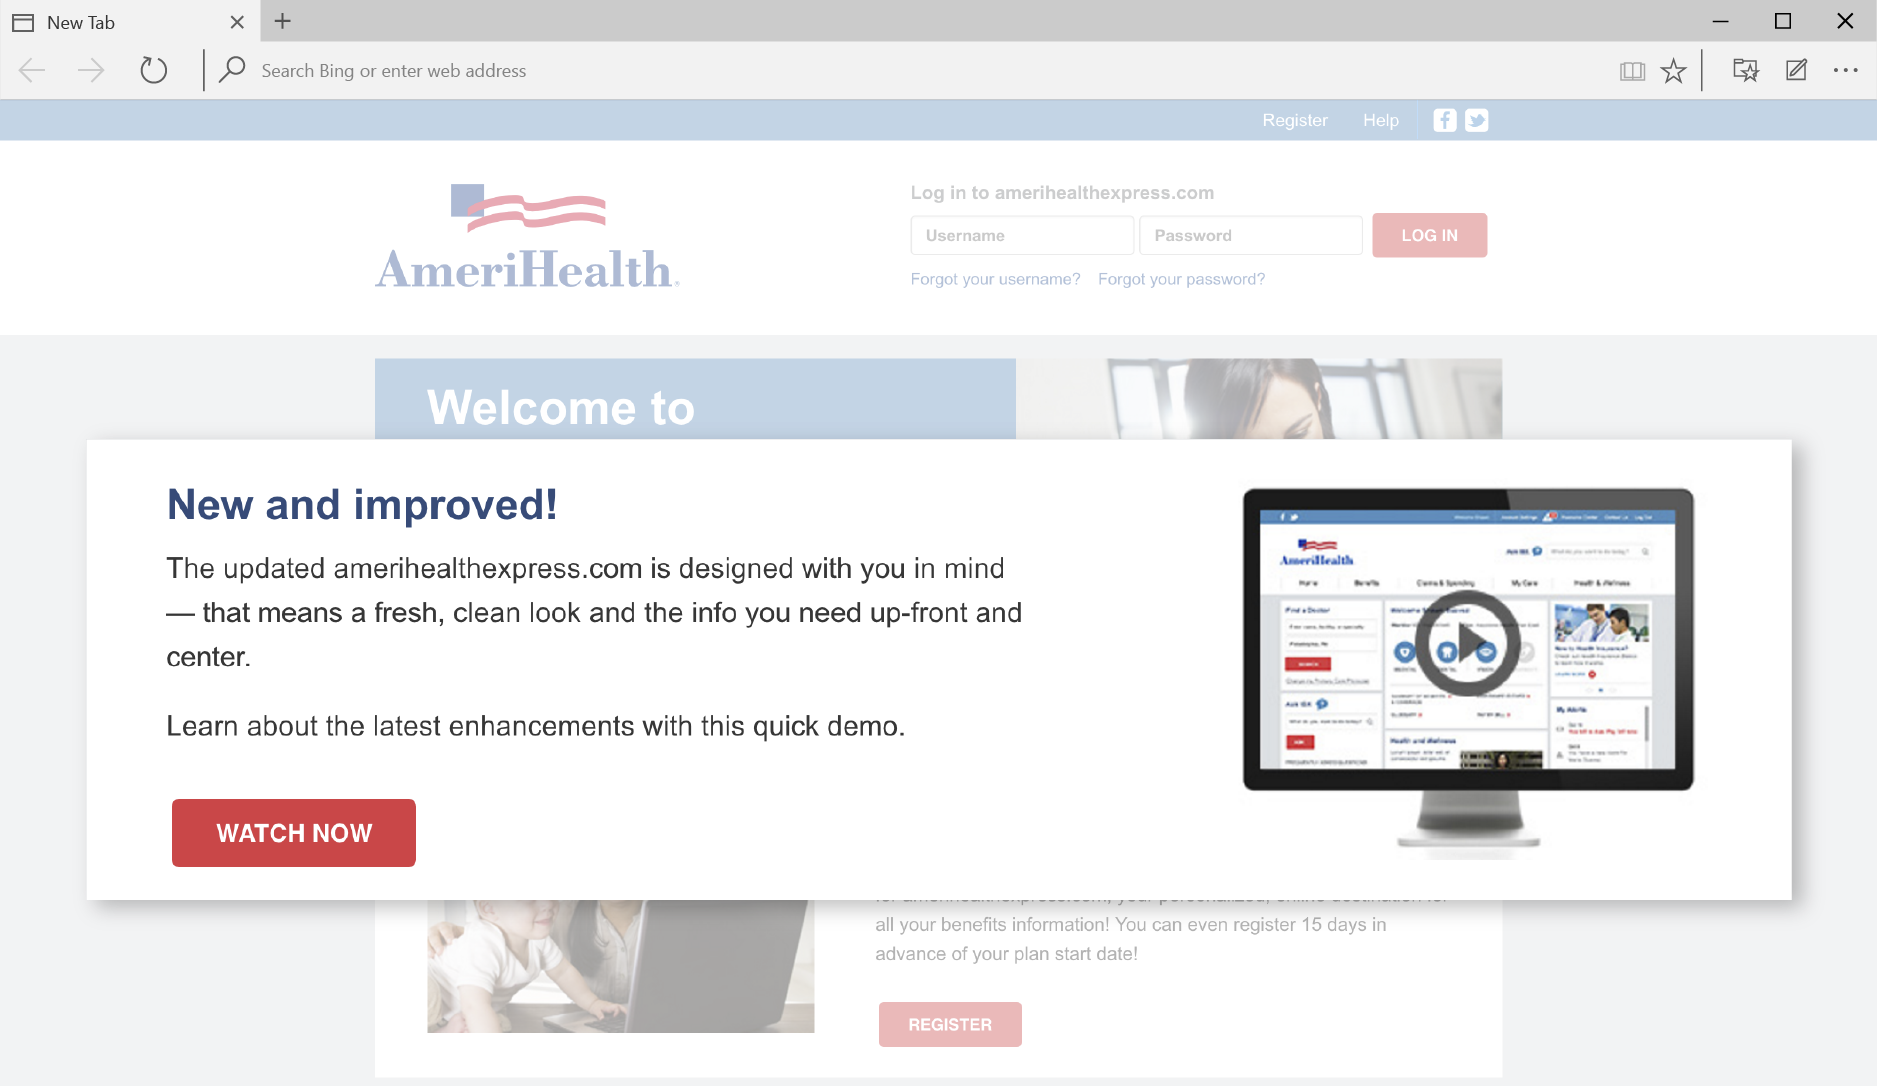 Amerihealth-Login-Image.png